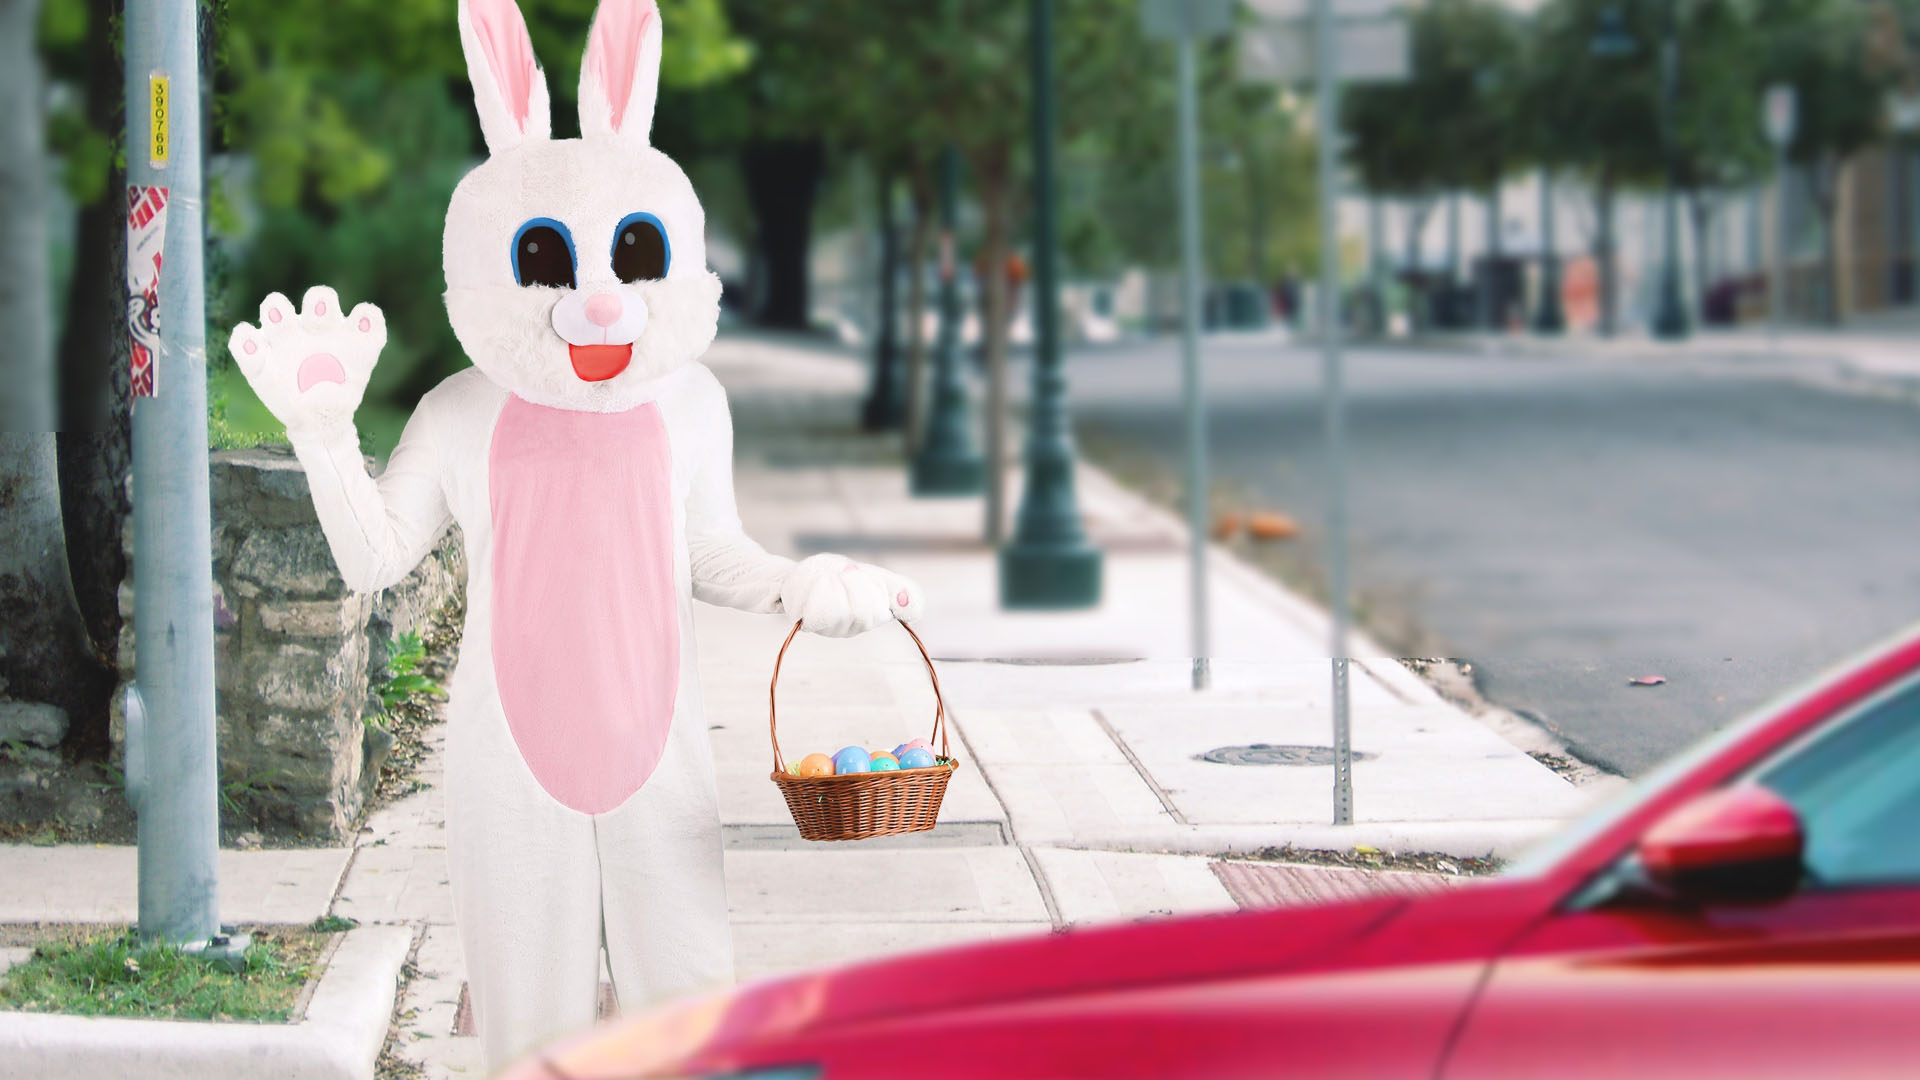 Regretful Easter Bunny Announces Eggs Will Be Limited To Curbside Pick-Up